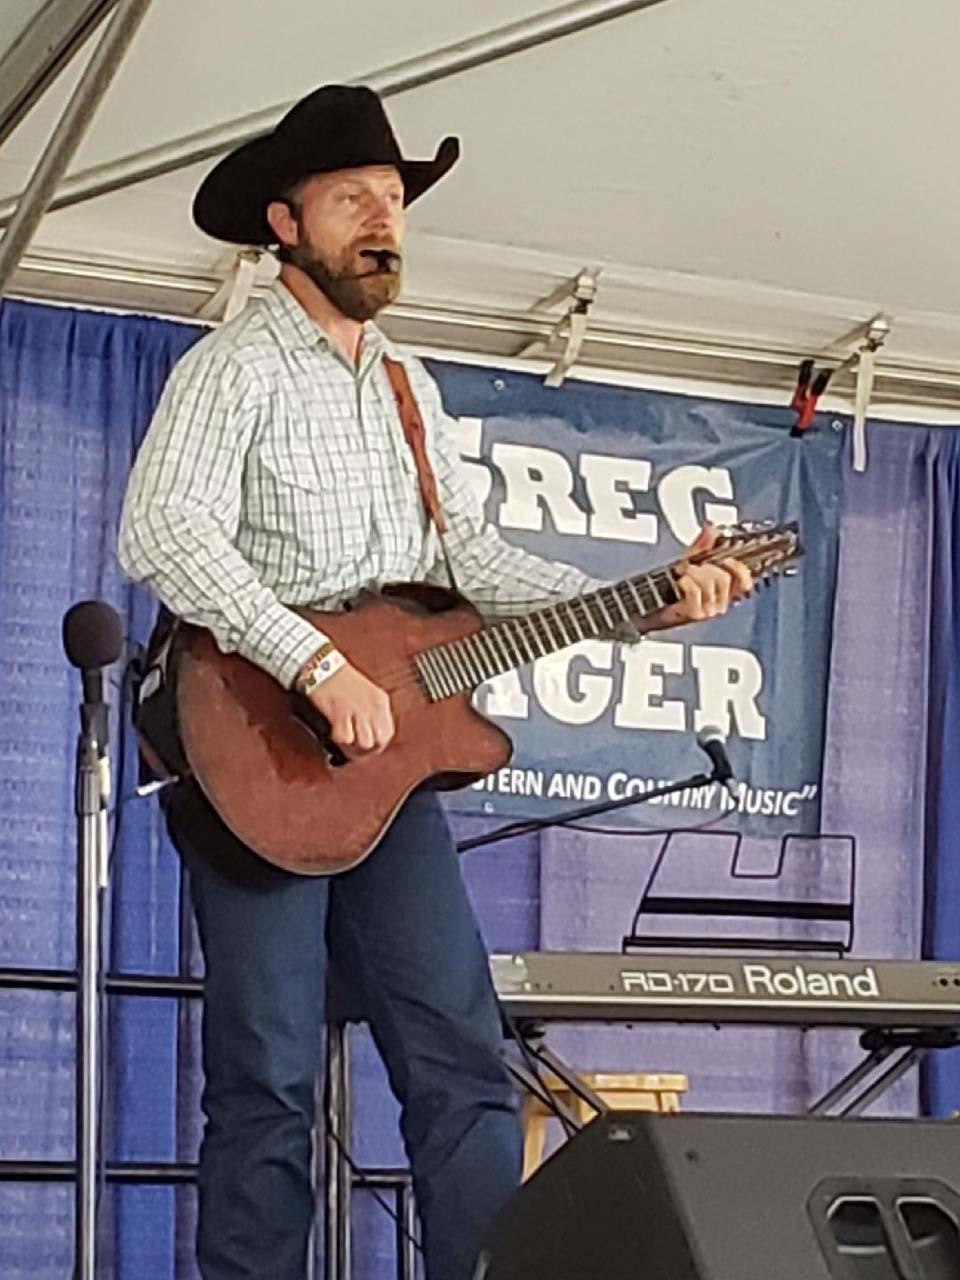 Country gospel artist Greg Hager offered his musical talents throughout fair weekend on the Free Stage.